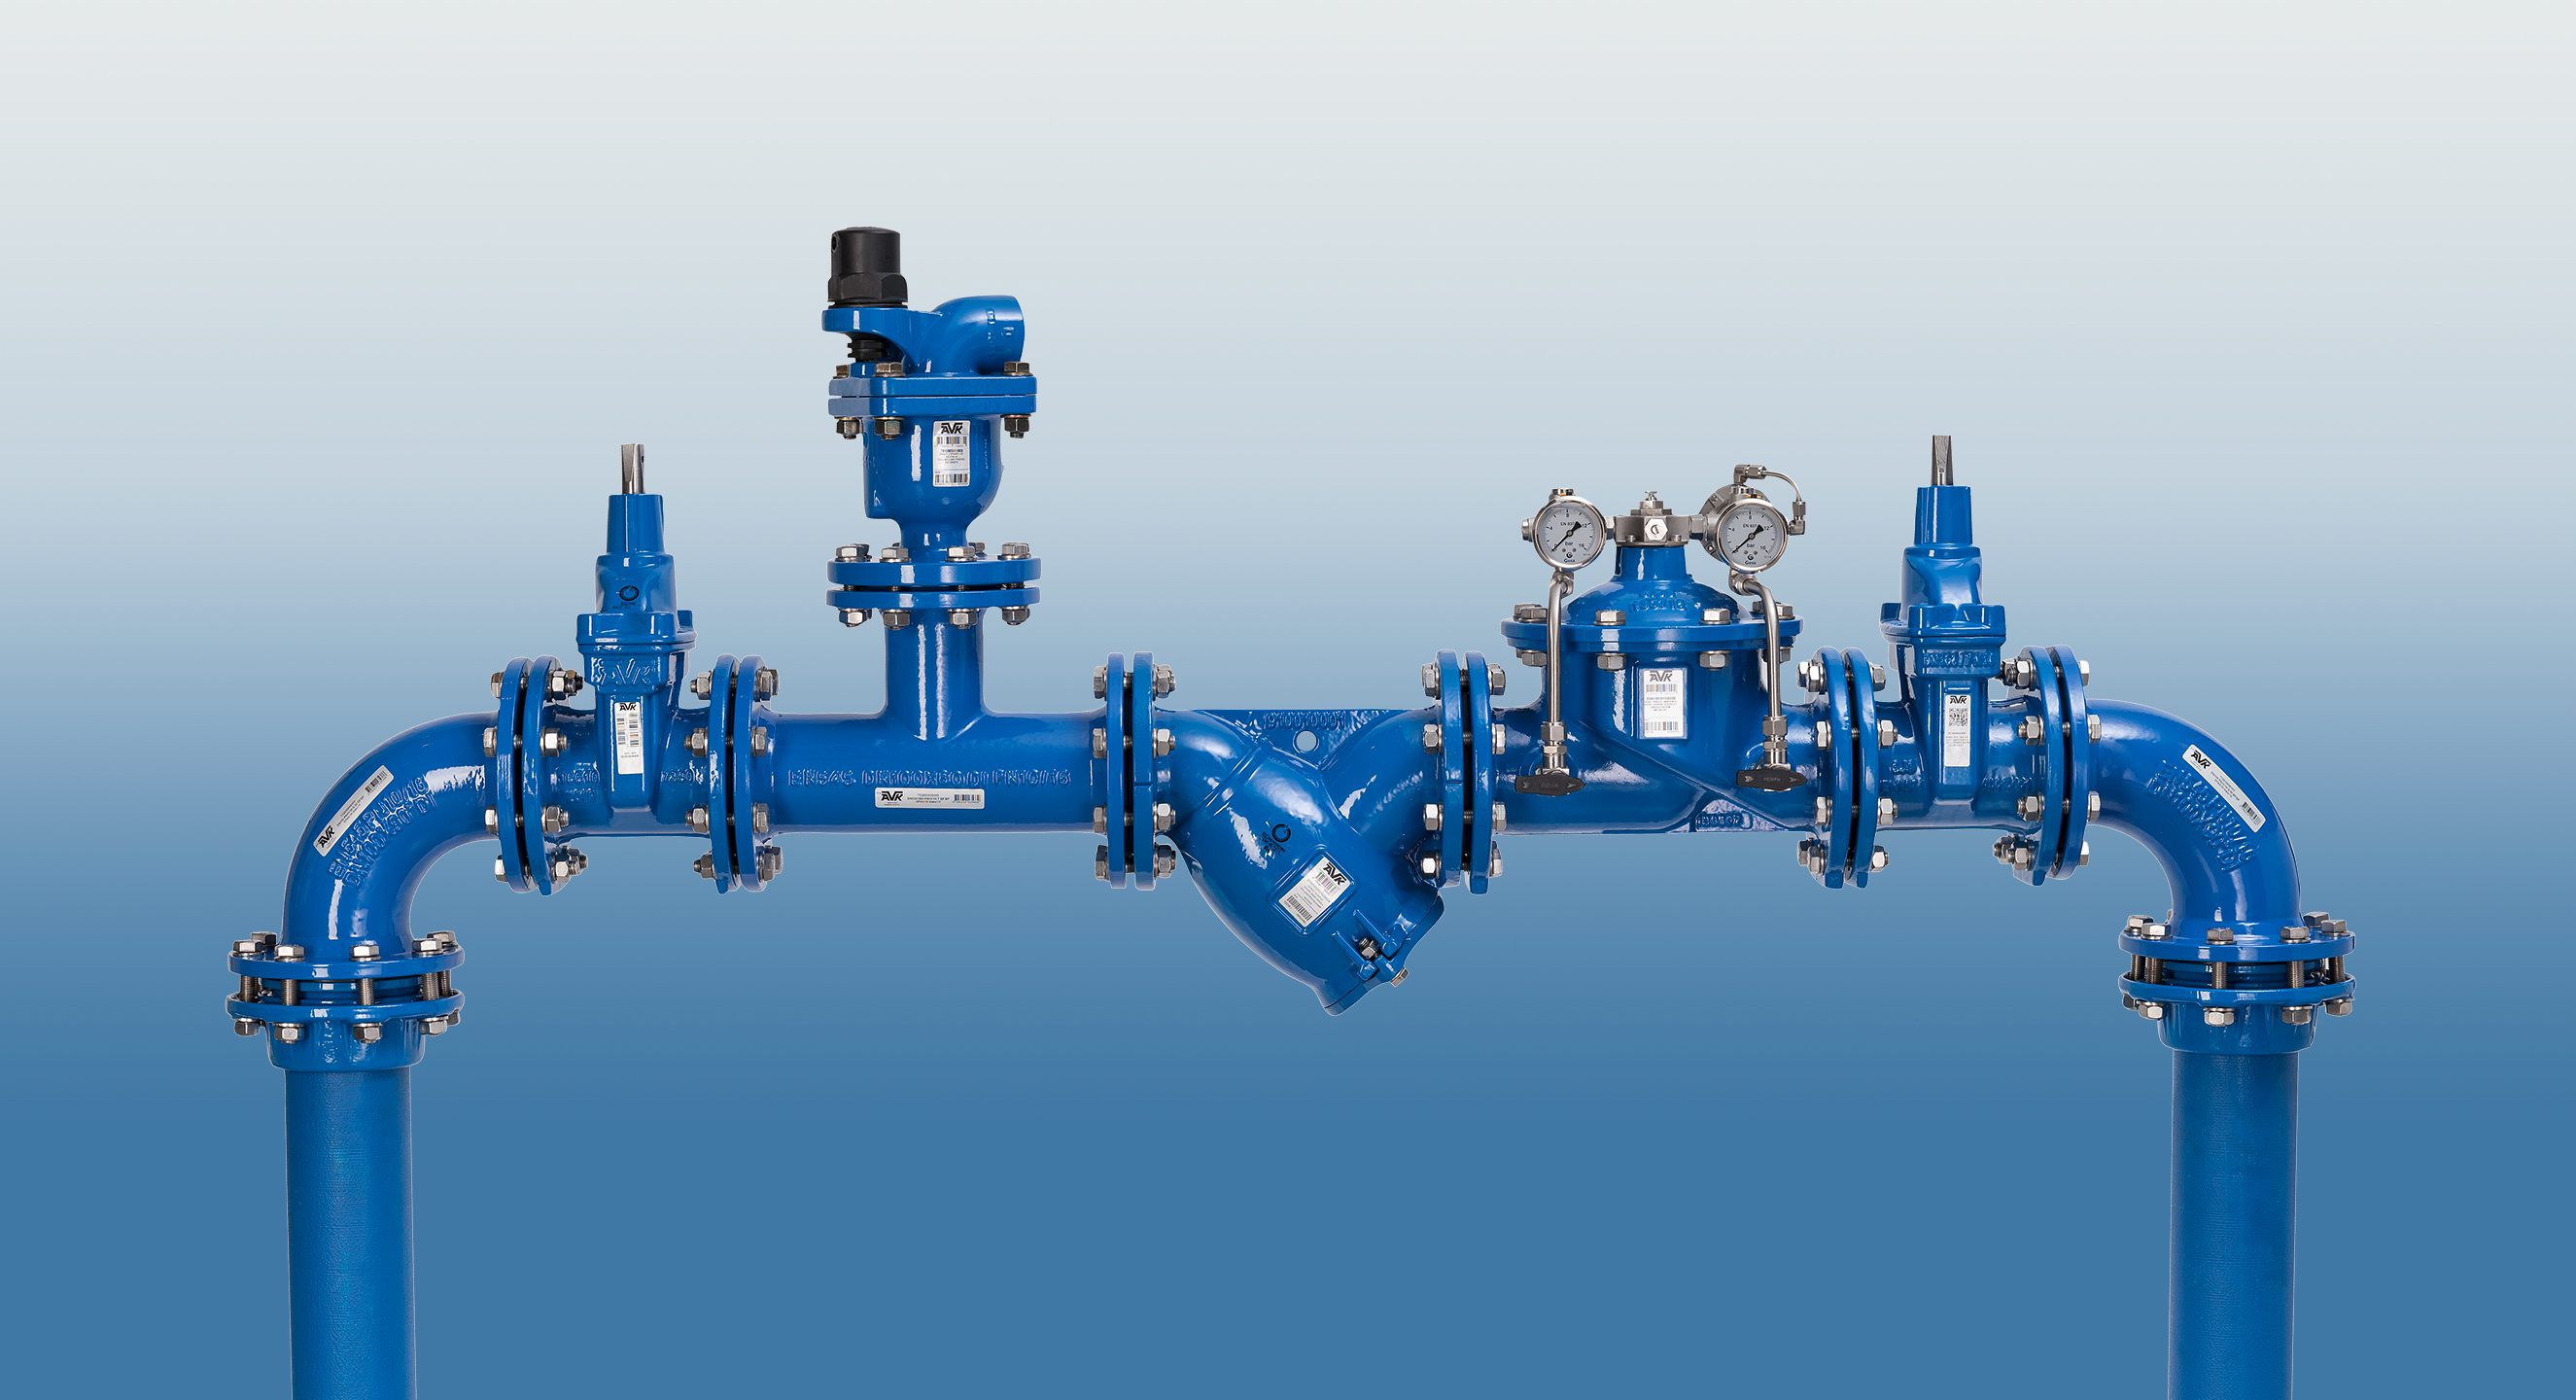 Product selection recommendations for installation of control valves